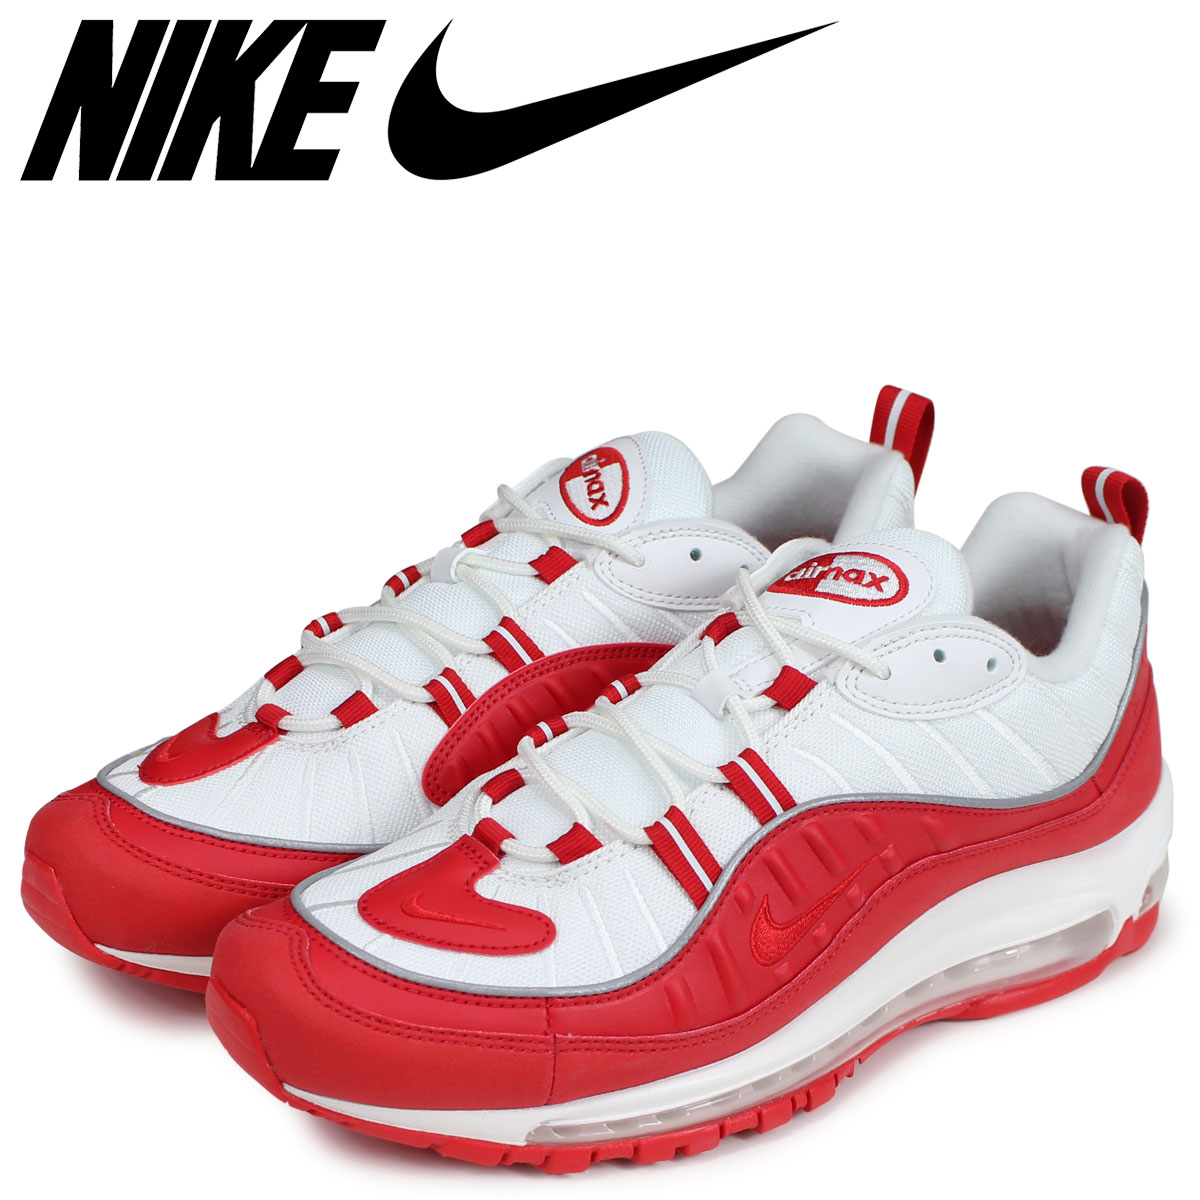 premium selection 6395b 0addb NIKE Kie Ney AMAX 98 sneakers men AIR MAX 98 red red 640,744-602